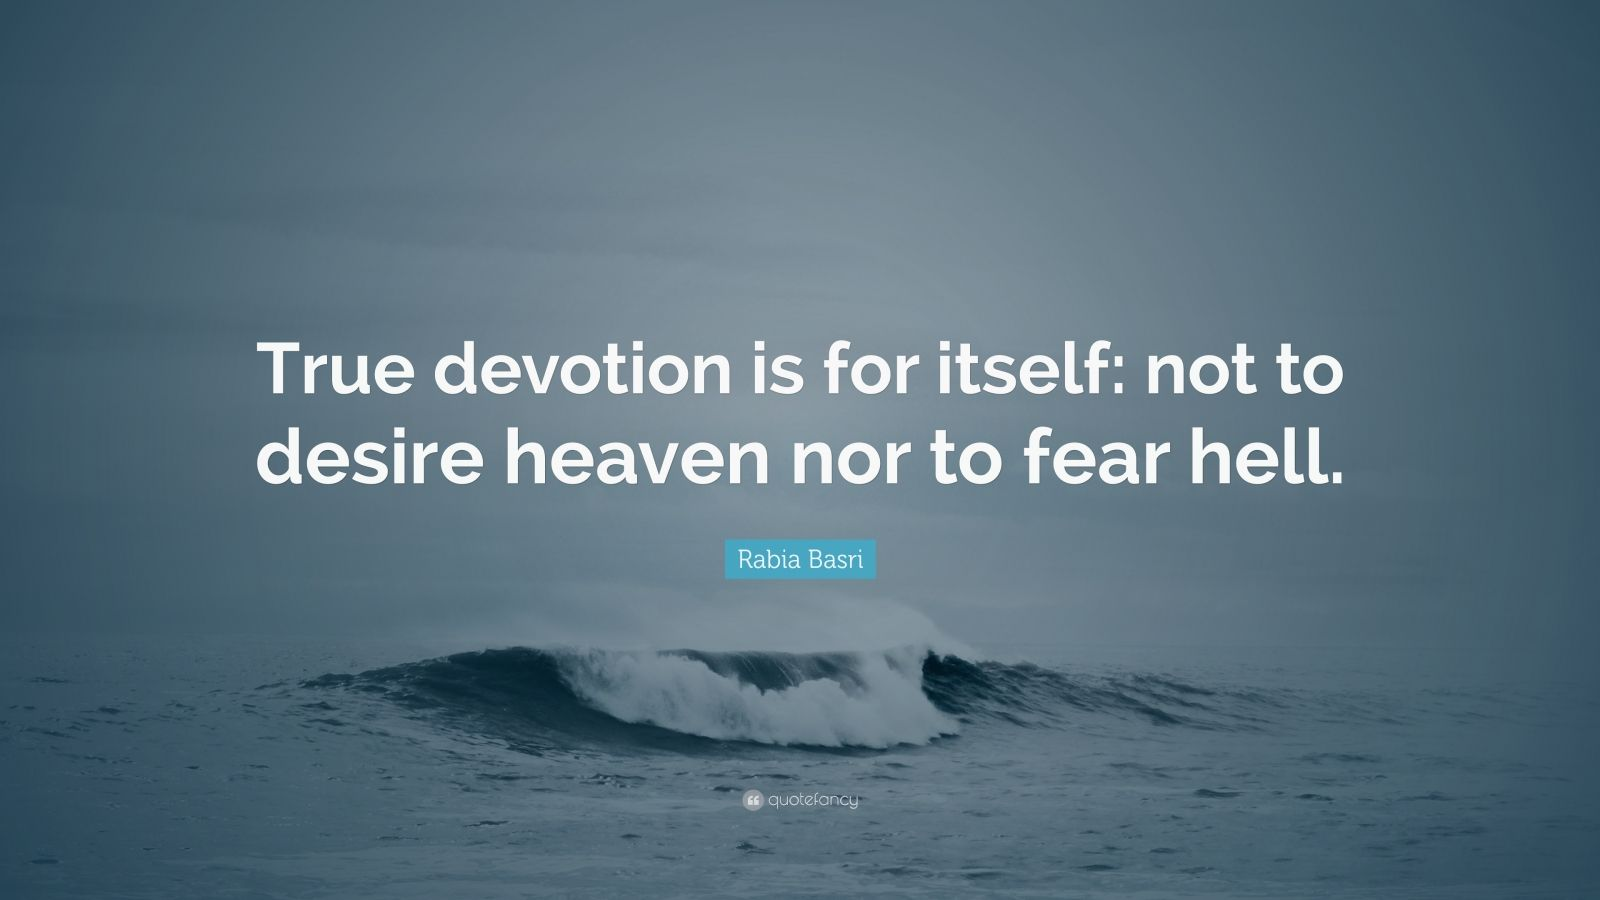 """Rabia Basri Quote: """"True devotion is for itself: not to desire heaven nor to fear hell."""""""